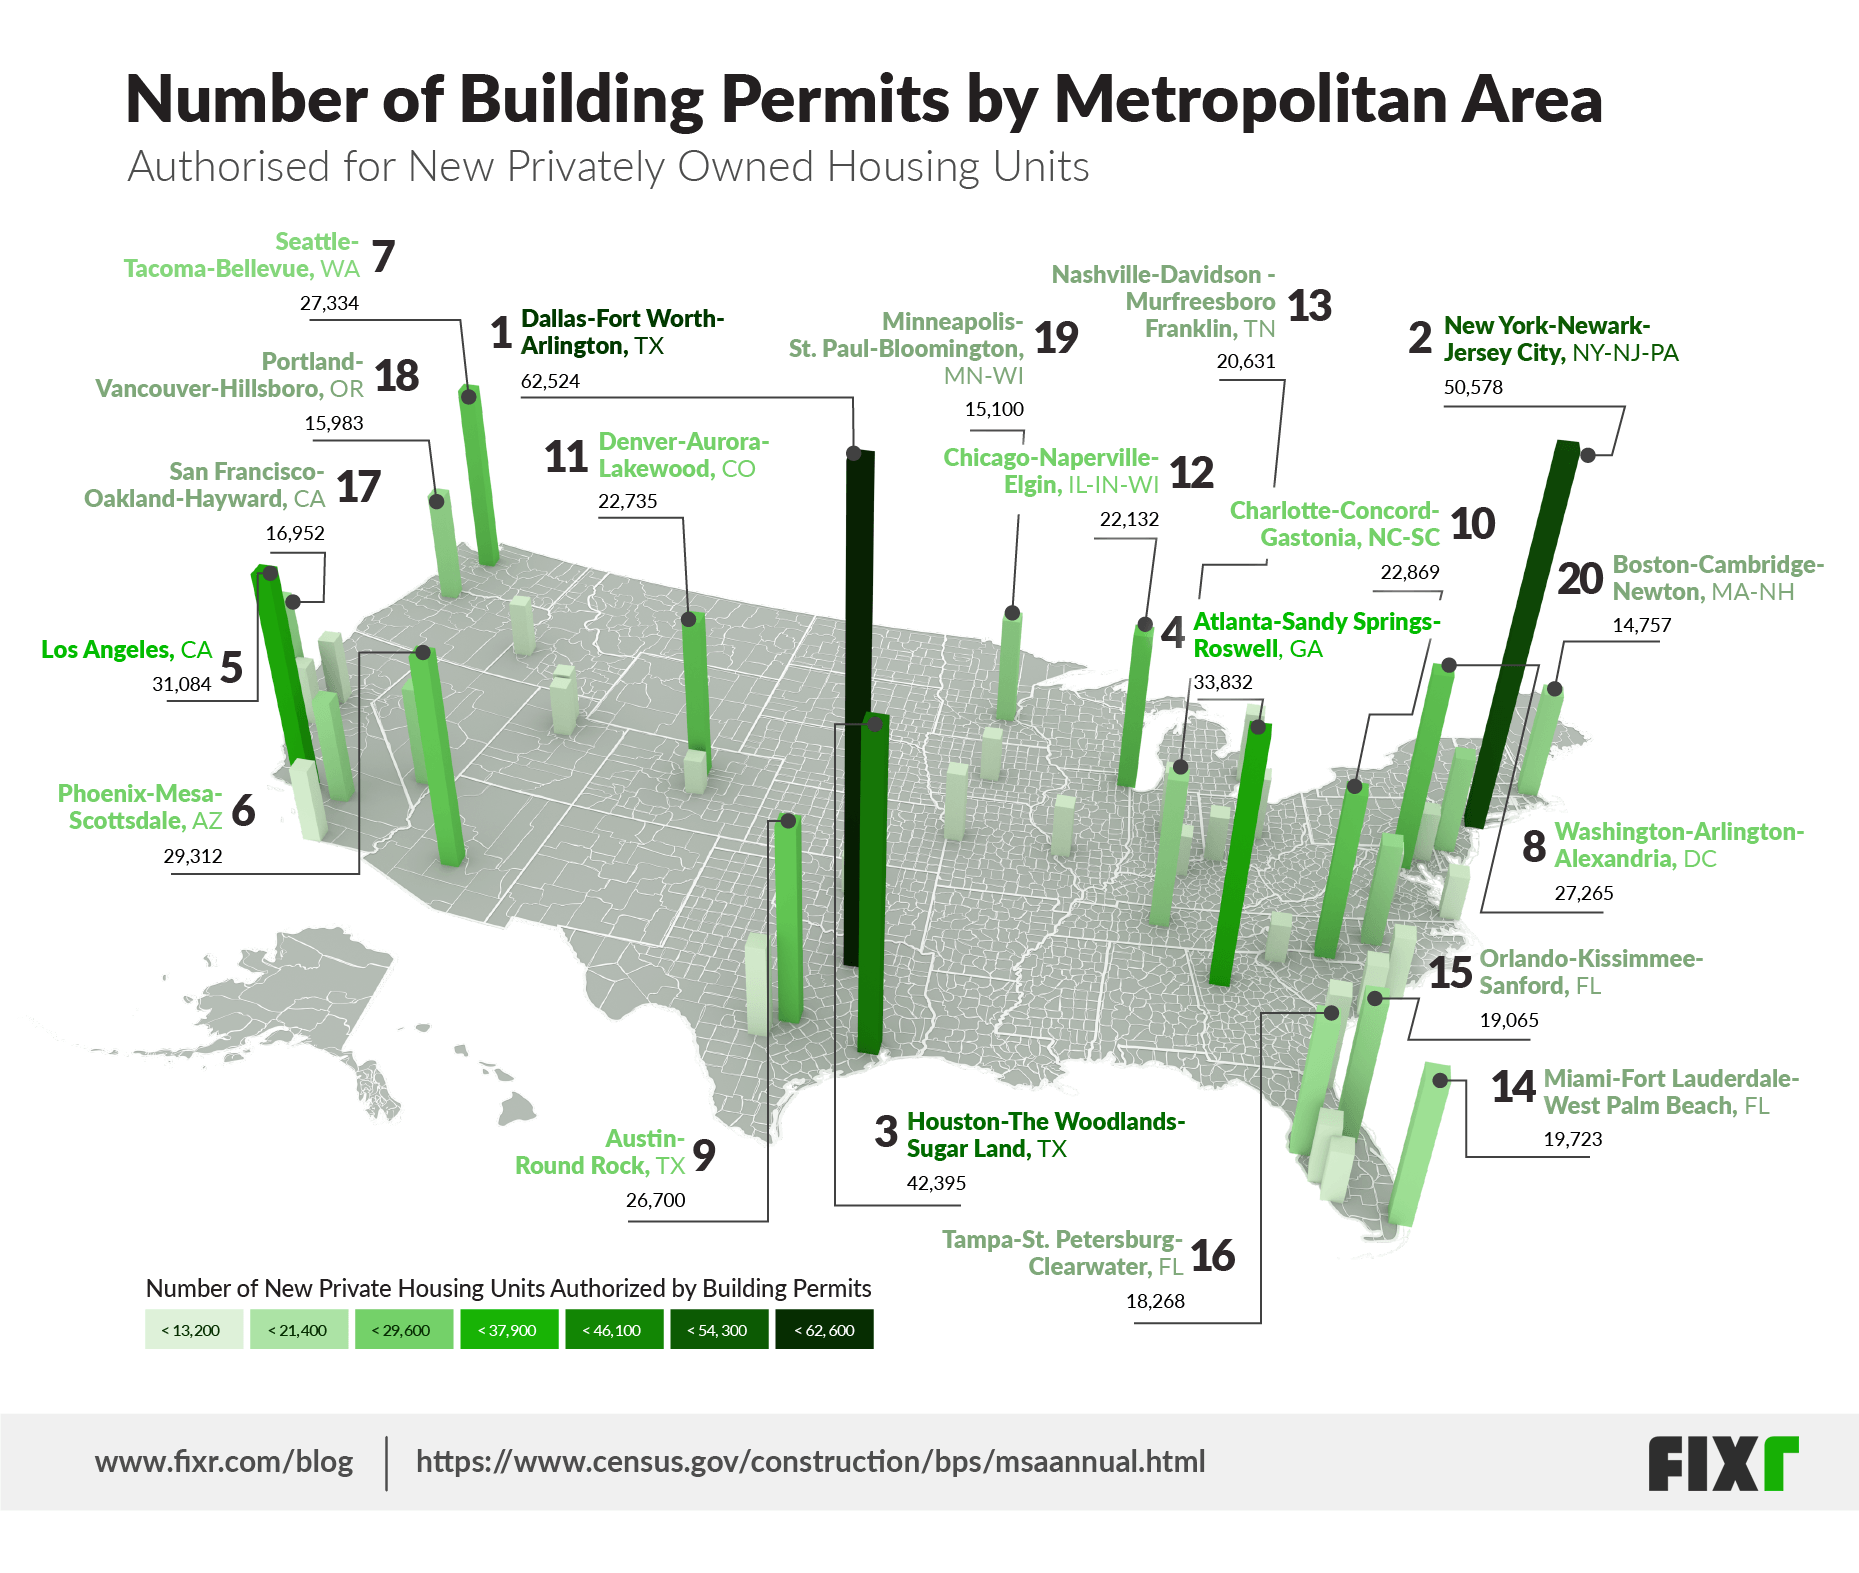 New Building Permits by Metro Area in a 3D Map